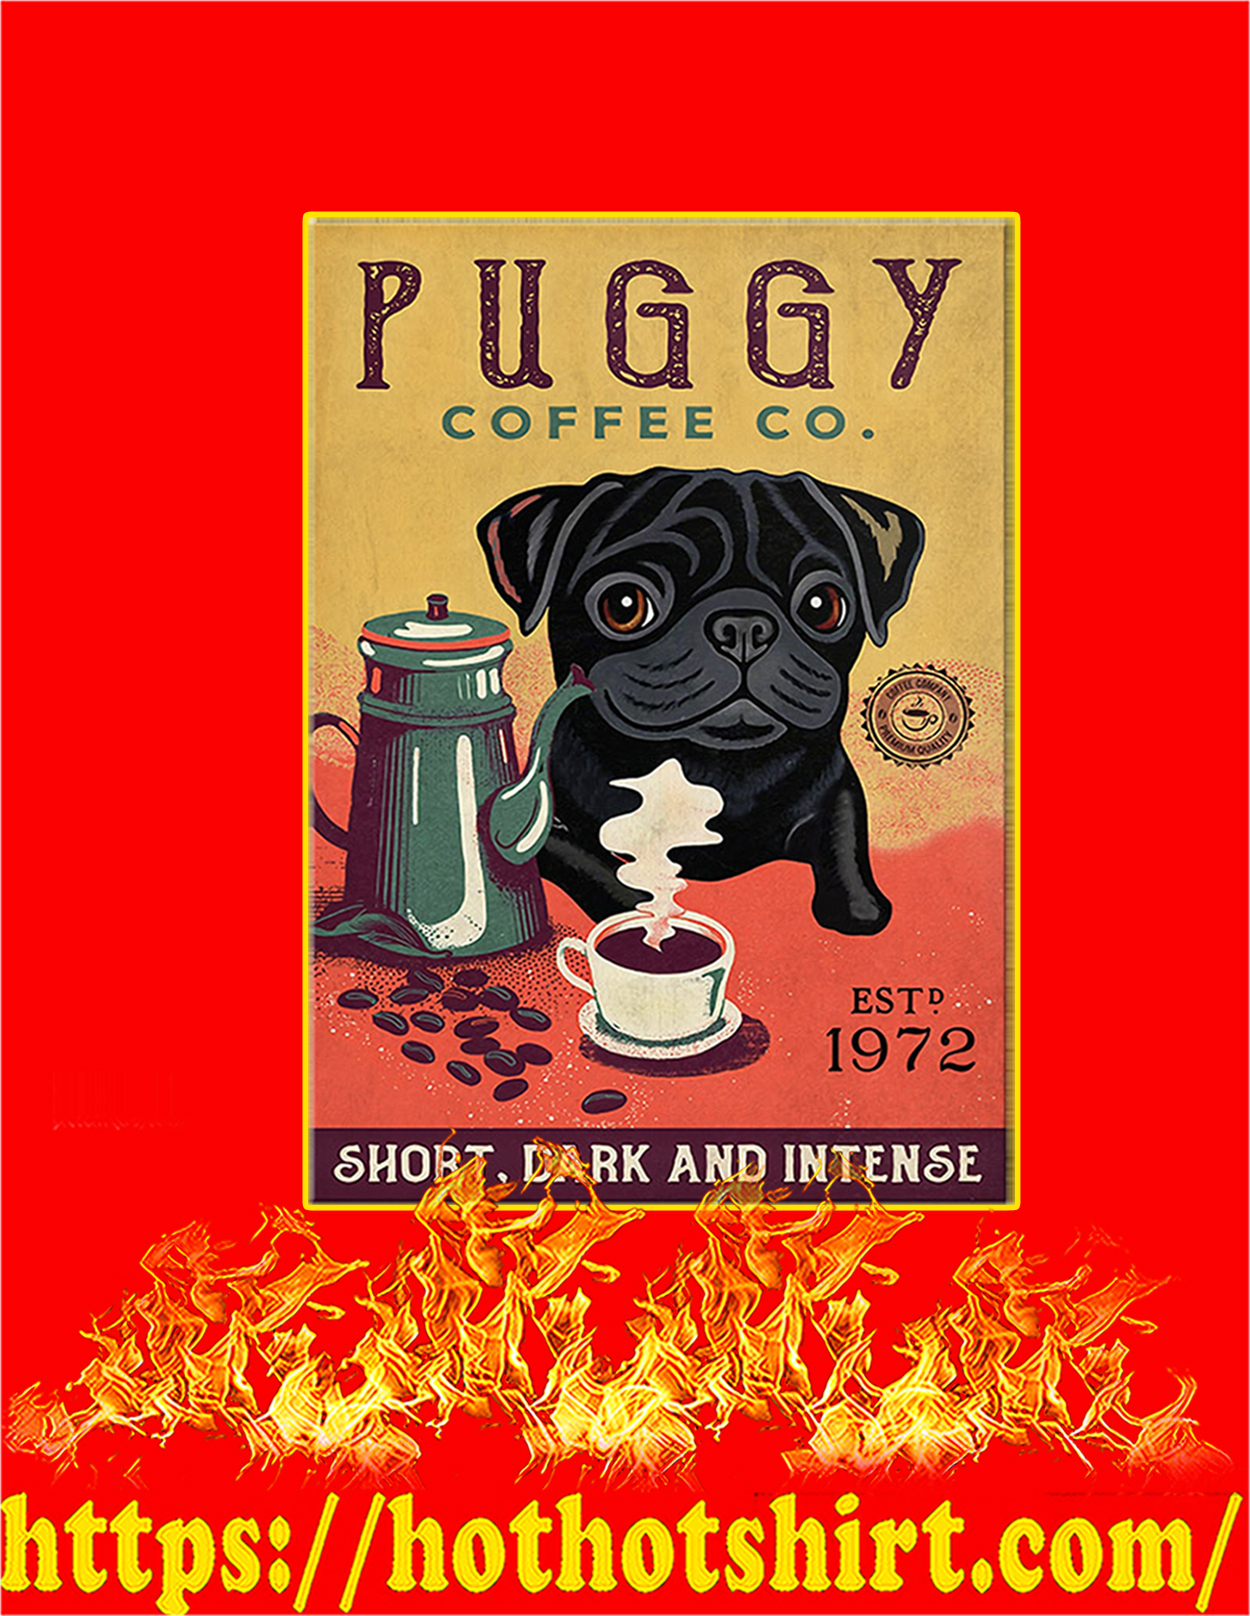 Puggy coffee co poster - A2